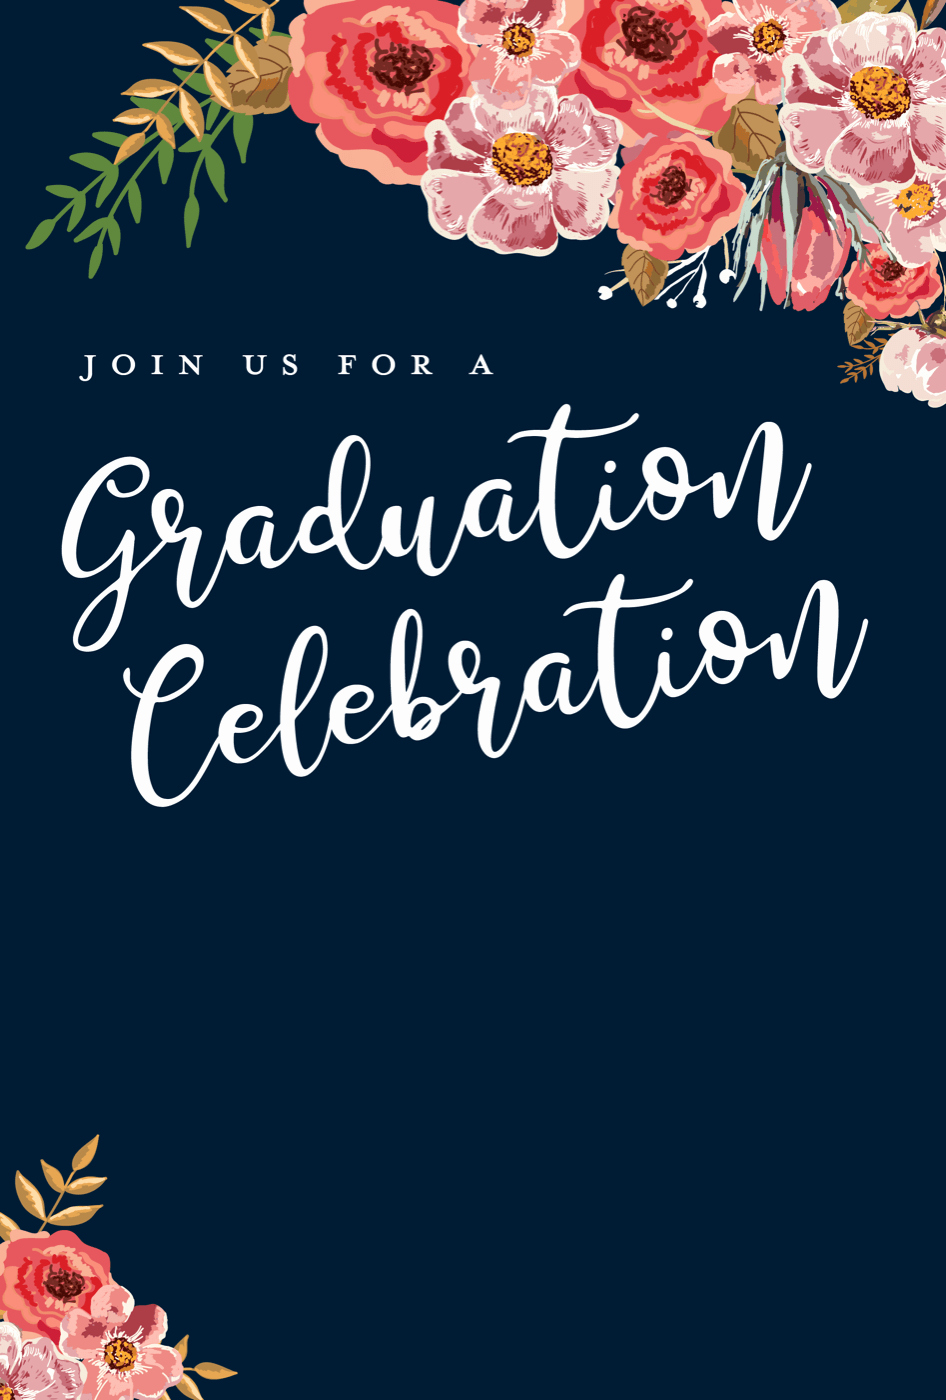 Blank Graduation Invitation Templates Awesome 5 Editable Graduation Party Invitation Templates Tips